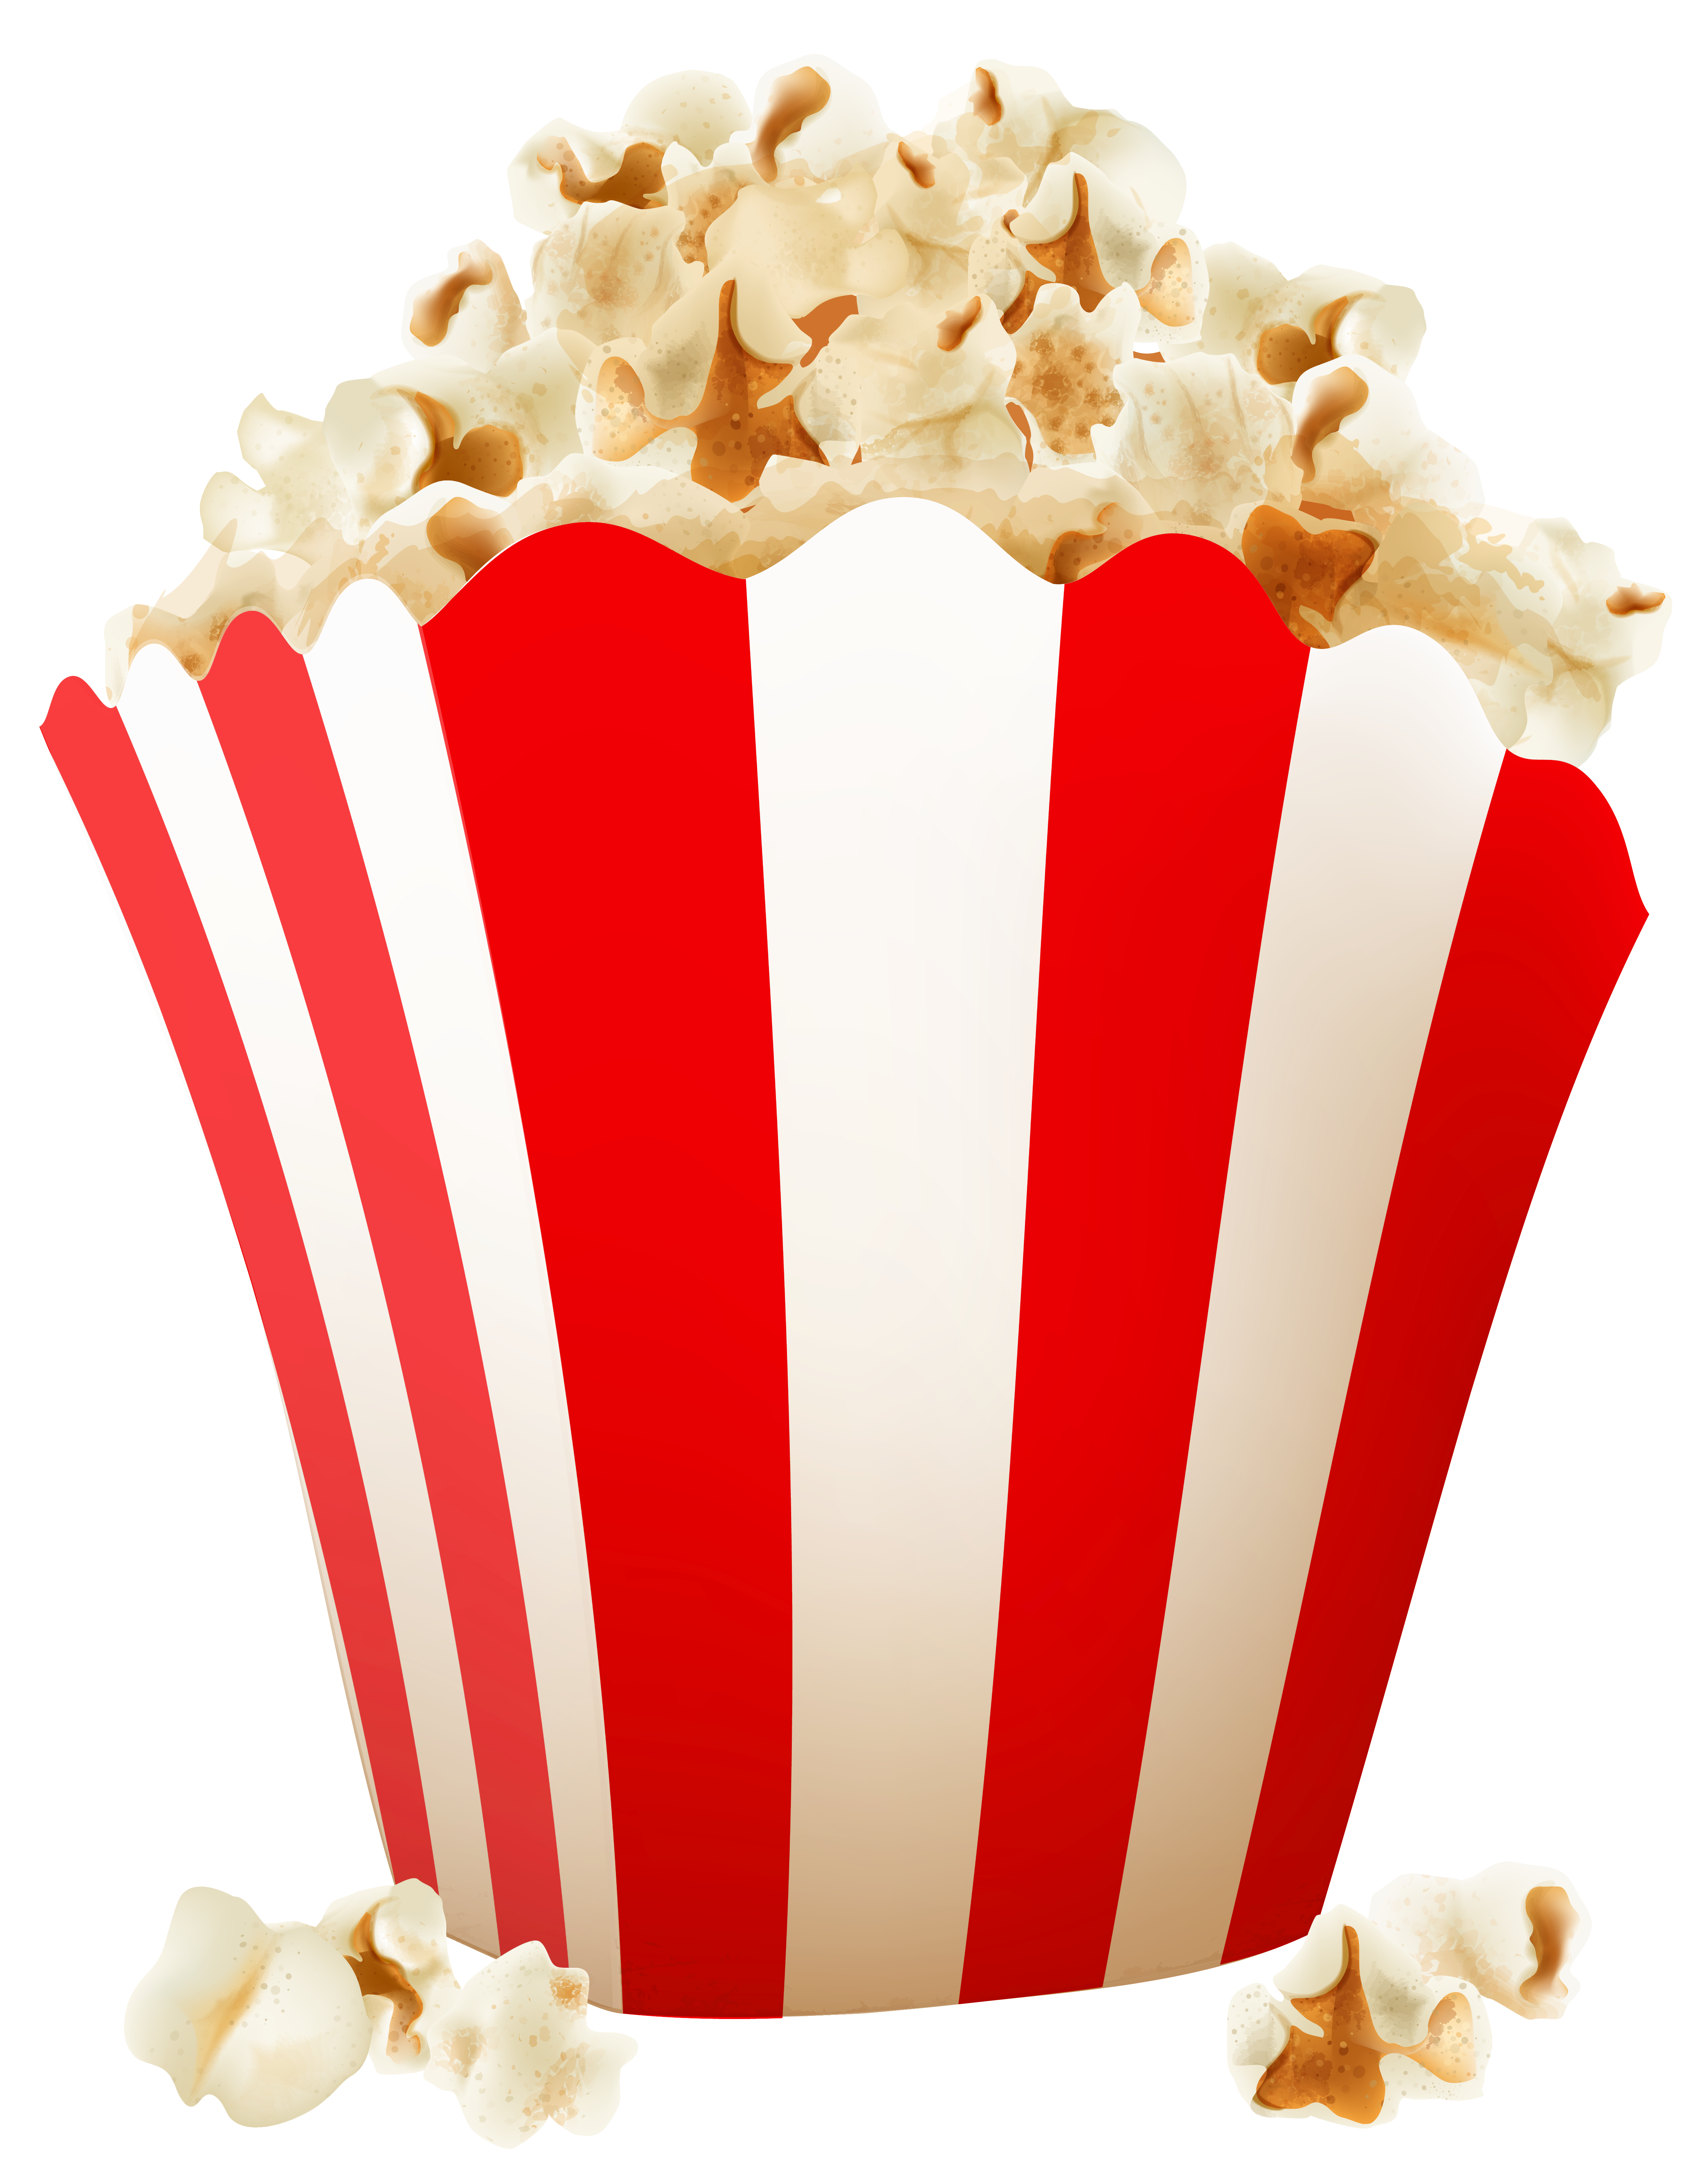 Popcorn clipart png. Clip art image gallery